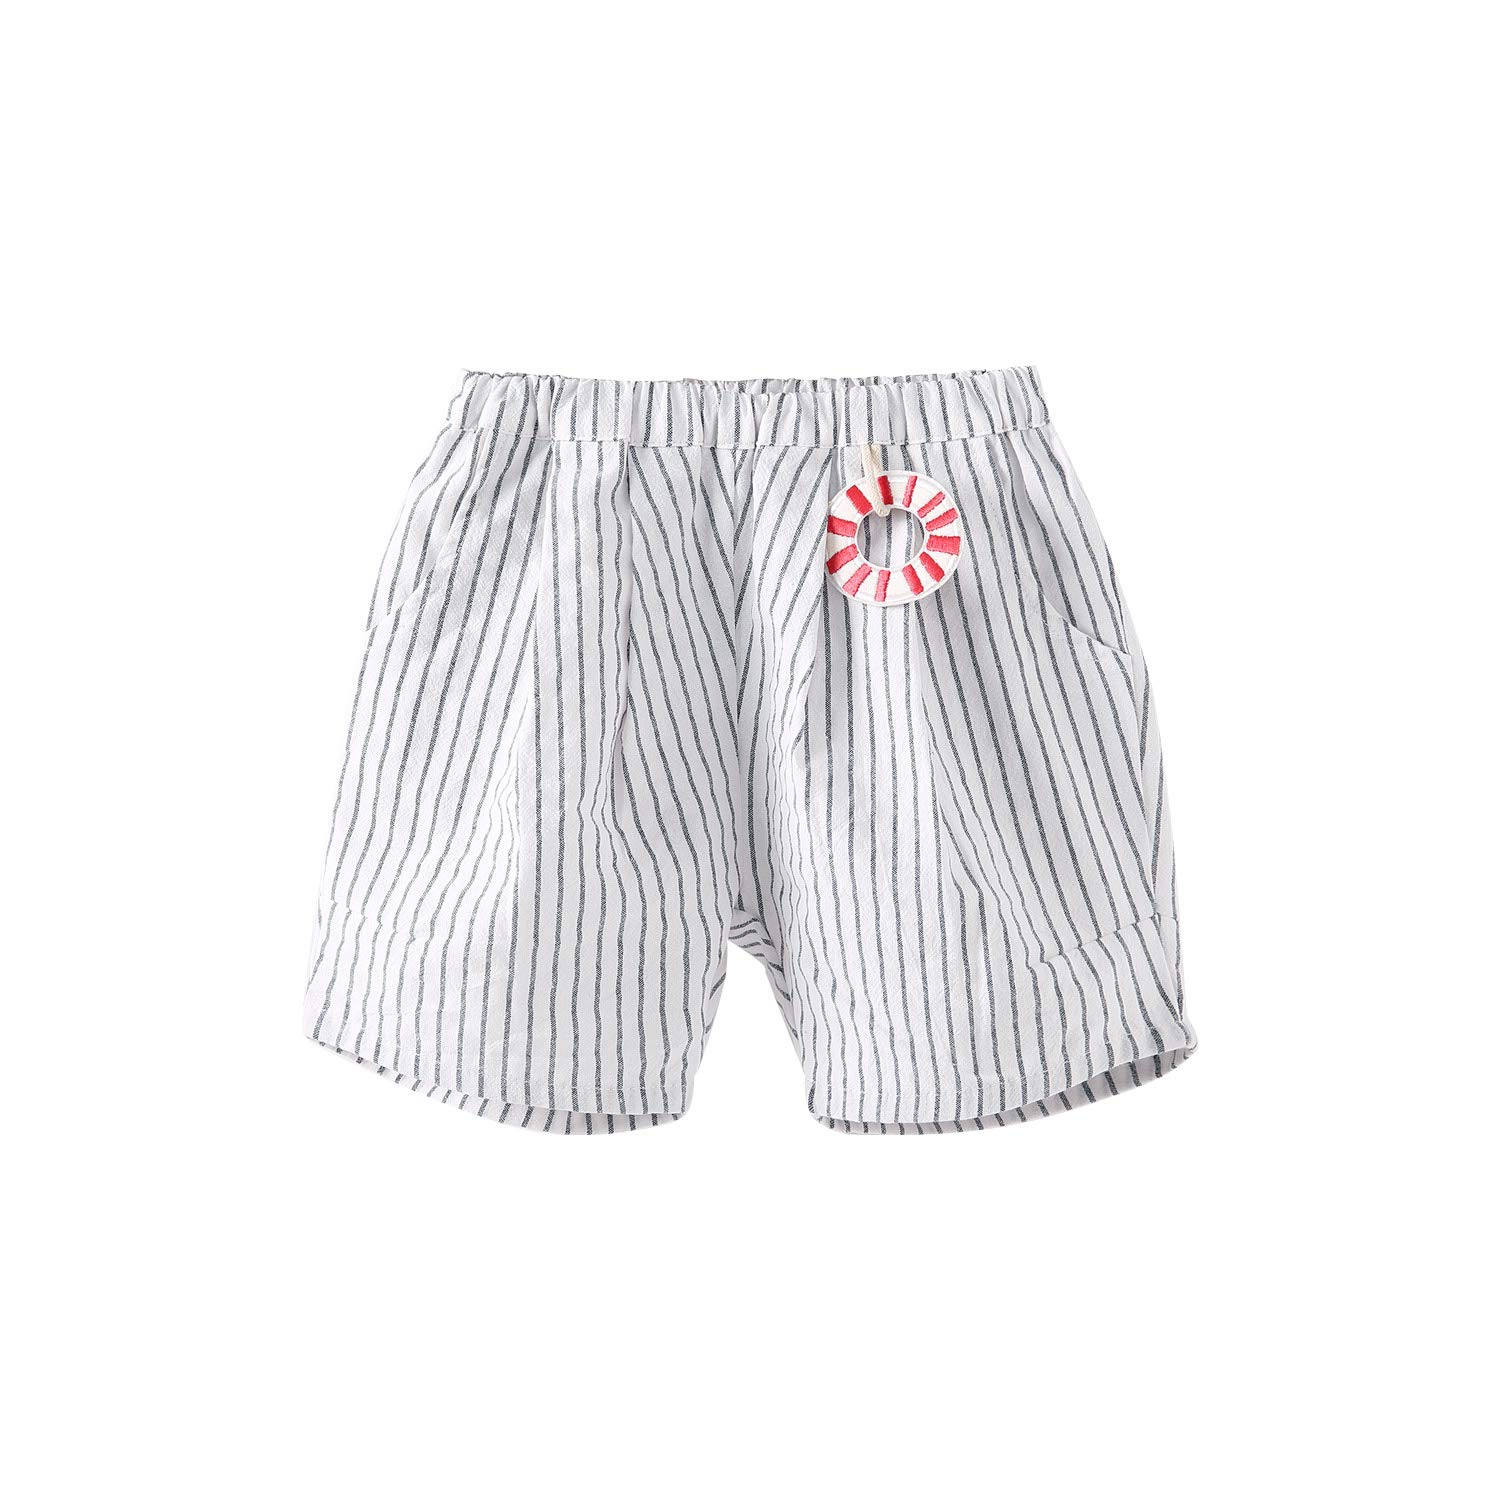 pureborn Toddler Baby Boy Classic Striped Cotton Shorts Pull-on Pants